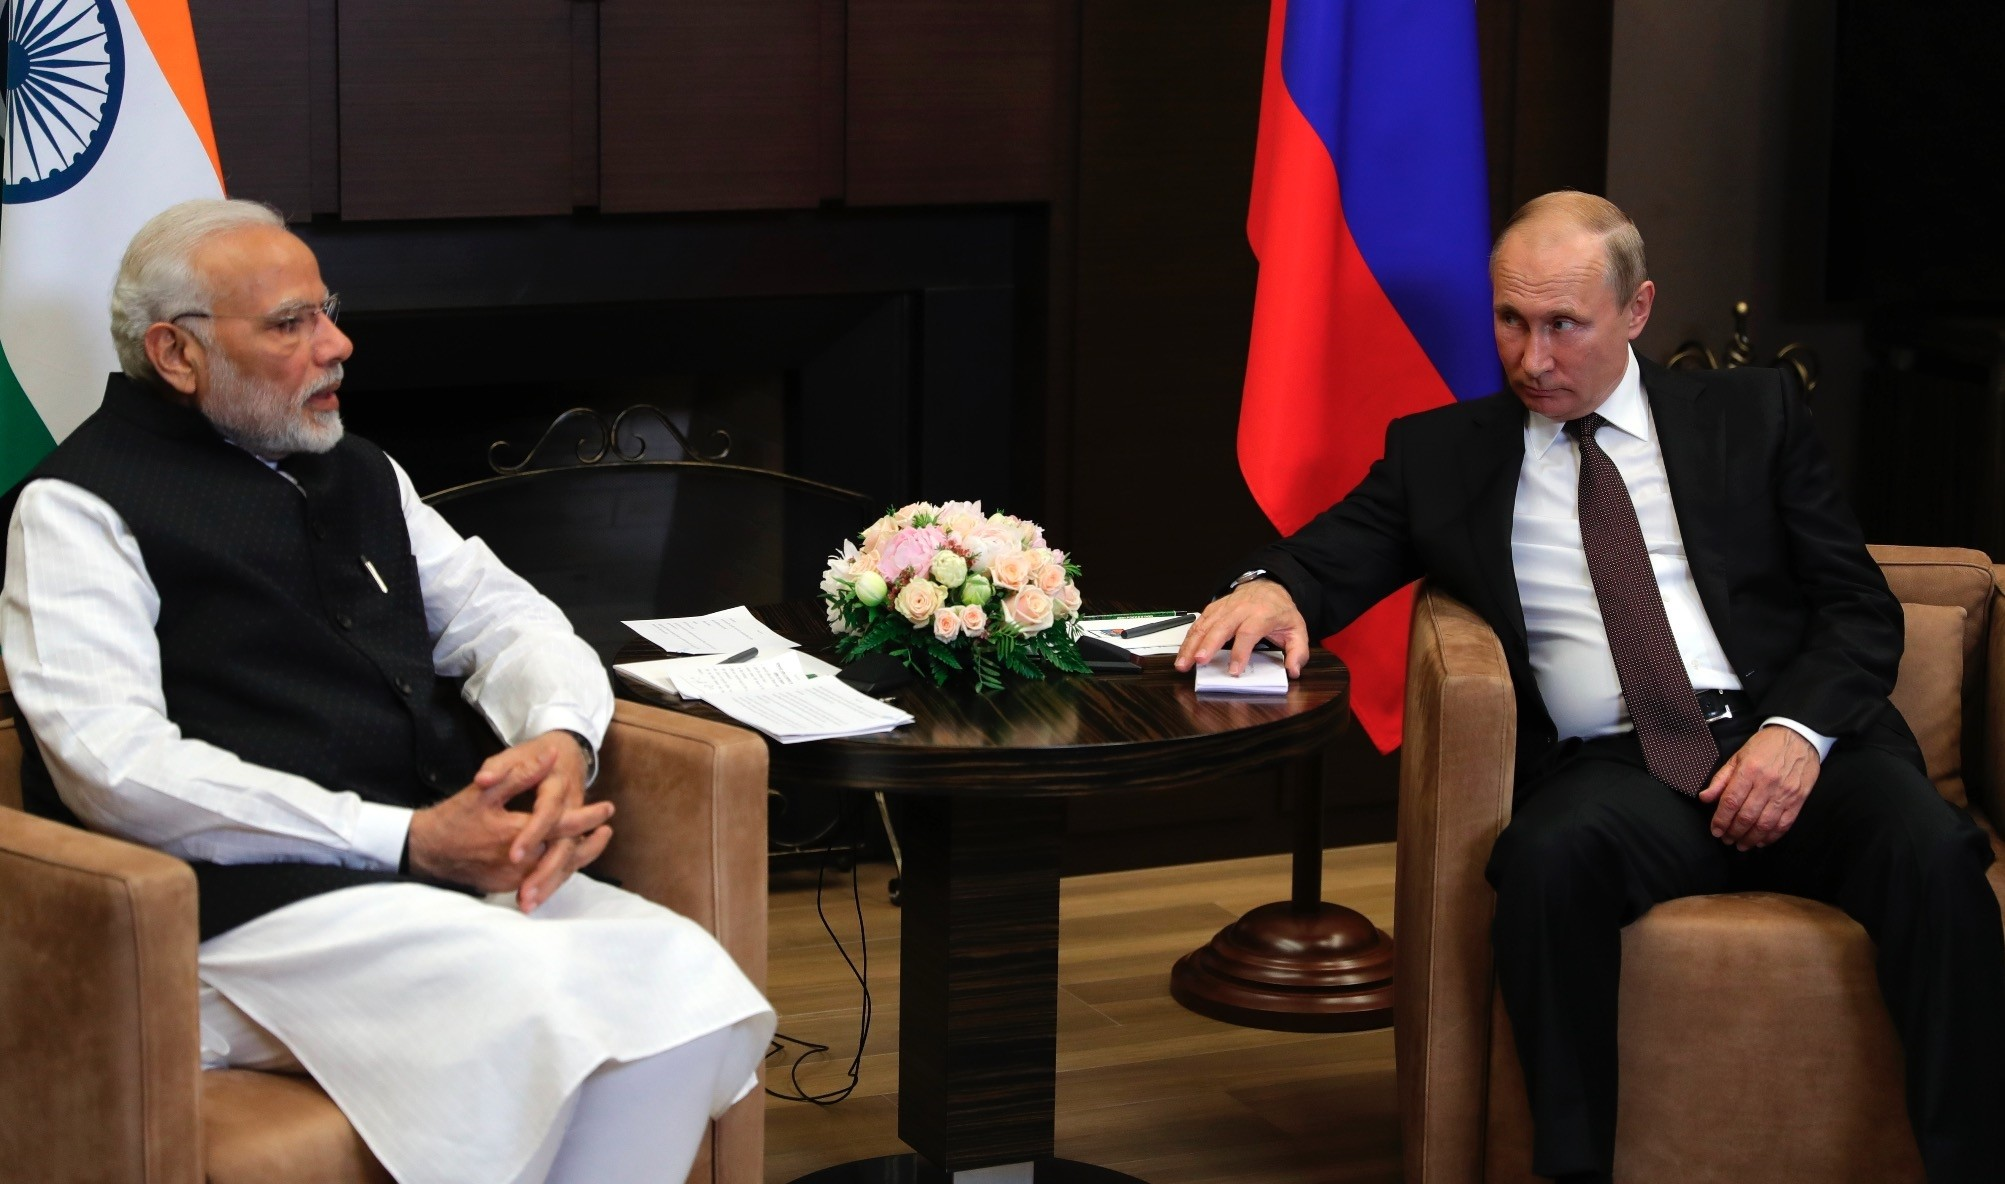 Russian President Vladimir Putin listens to Indian Prime Minister Narendra Modi (L) in the Bocharov Ruchei residence, Sochi, May 21.